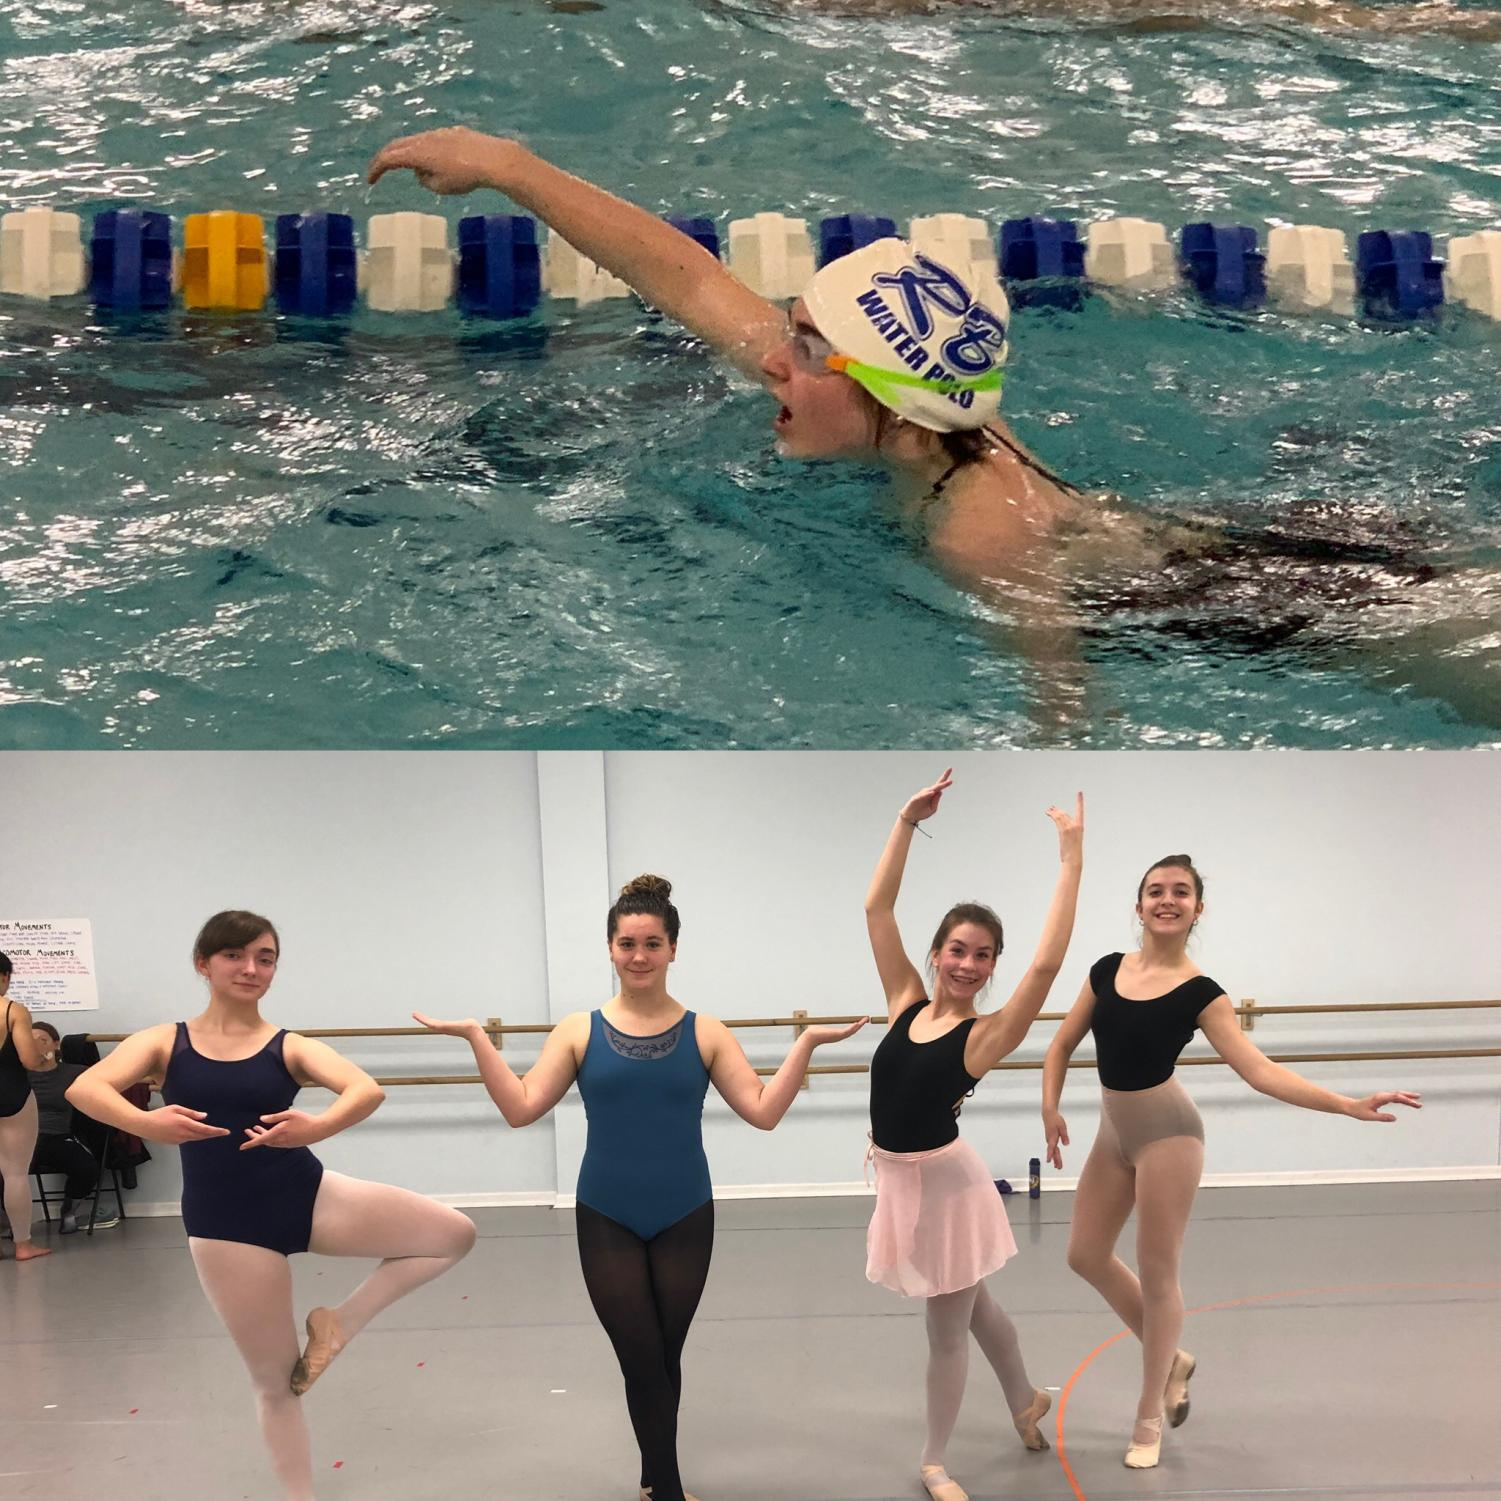 (Top) Bella Brick shows off her poor swimming technique during practice. (Bottom) Sarah Strubbe is extremely confused by ballet terminology. Photos by Mike Laurich and Bella Brick.